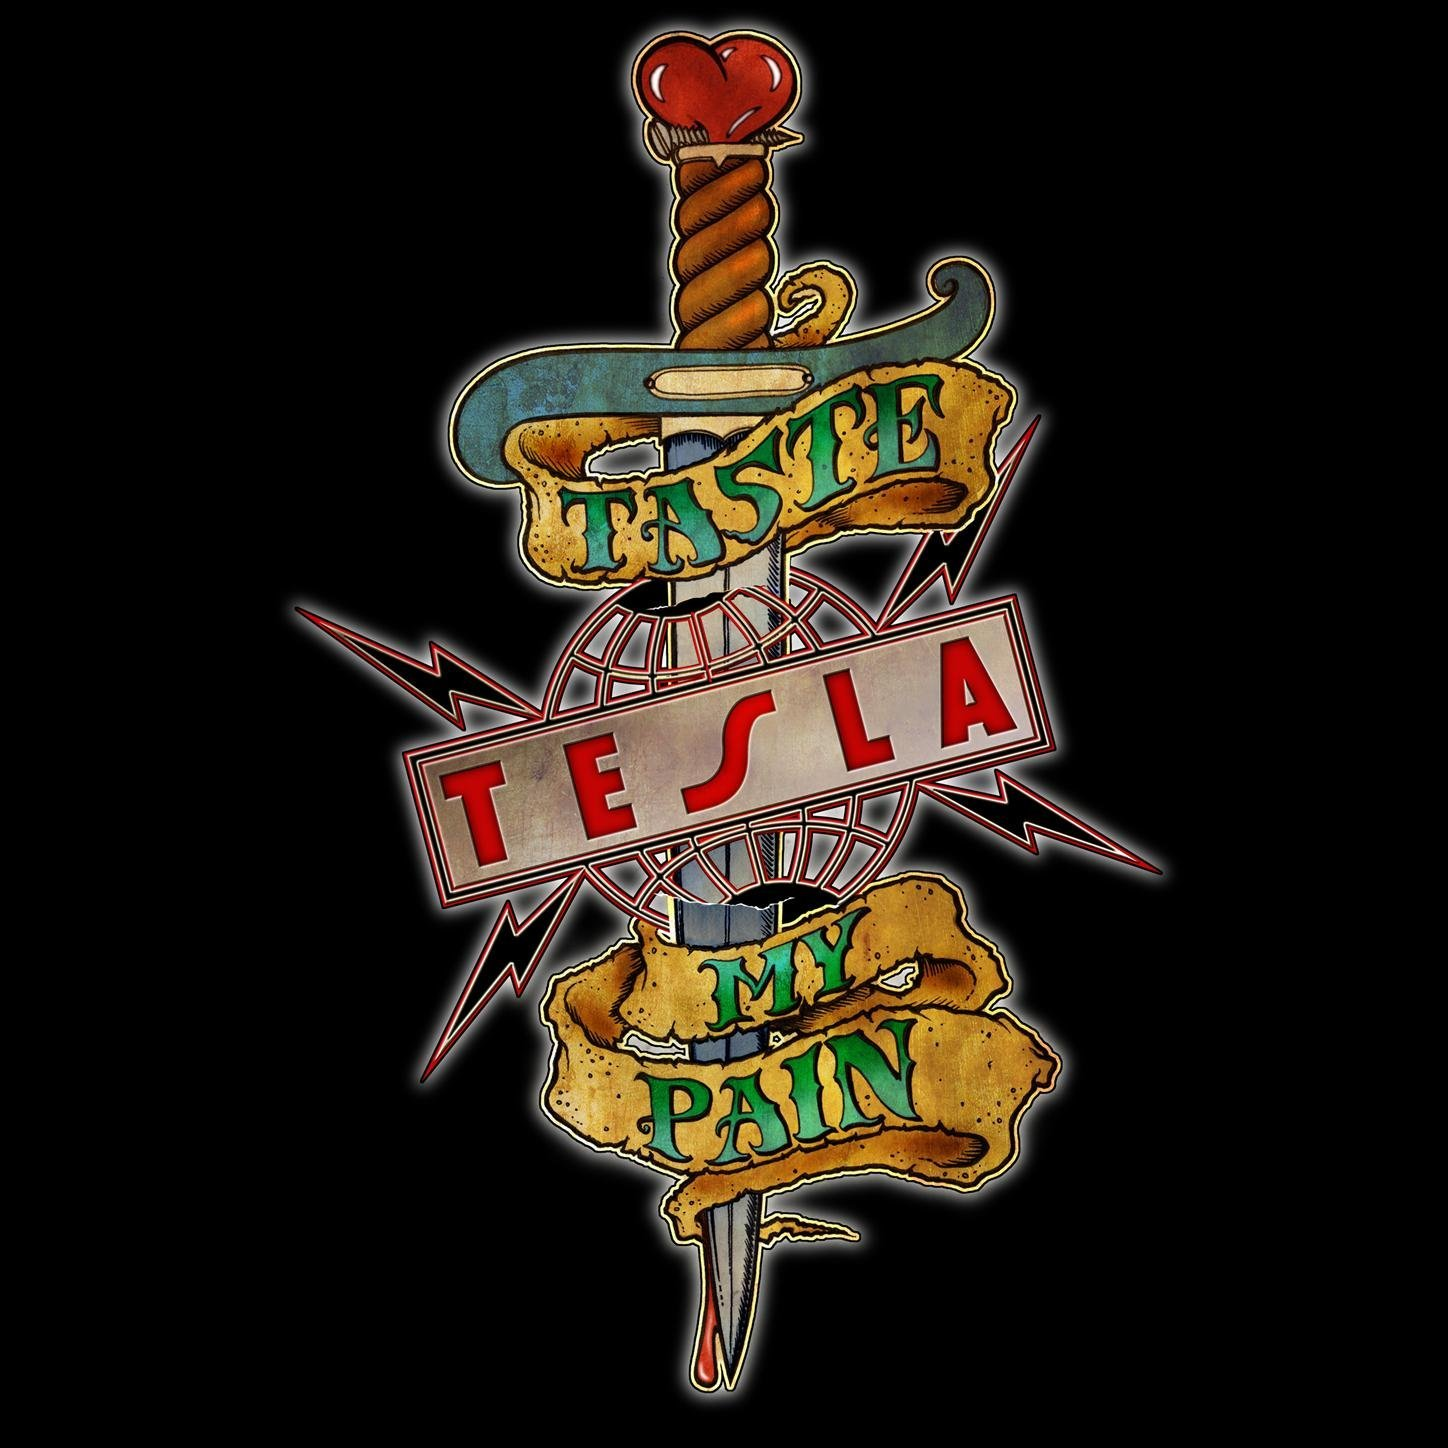 TESLA - Taste My Pain (2013) itunes, mp3, download